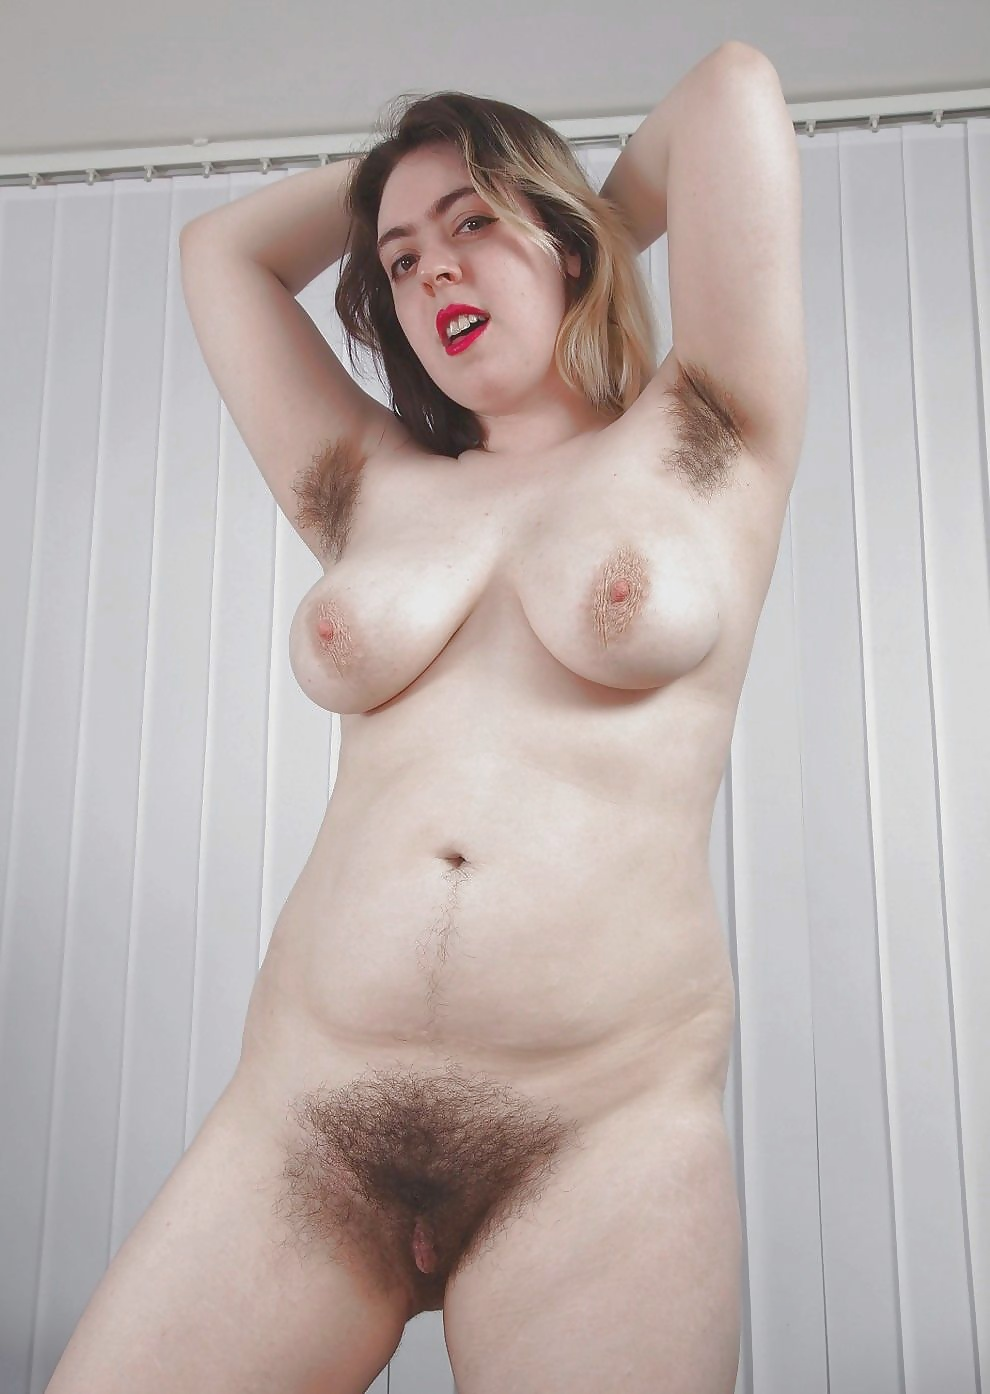 Fat naked girls with hairy pussies, karena sexy xxx pic